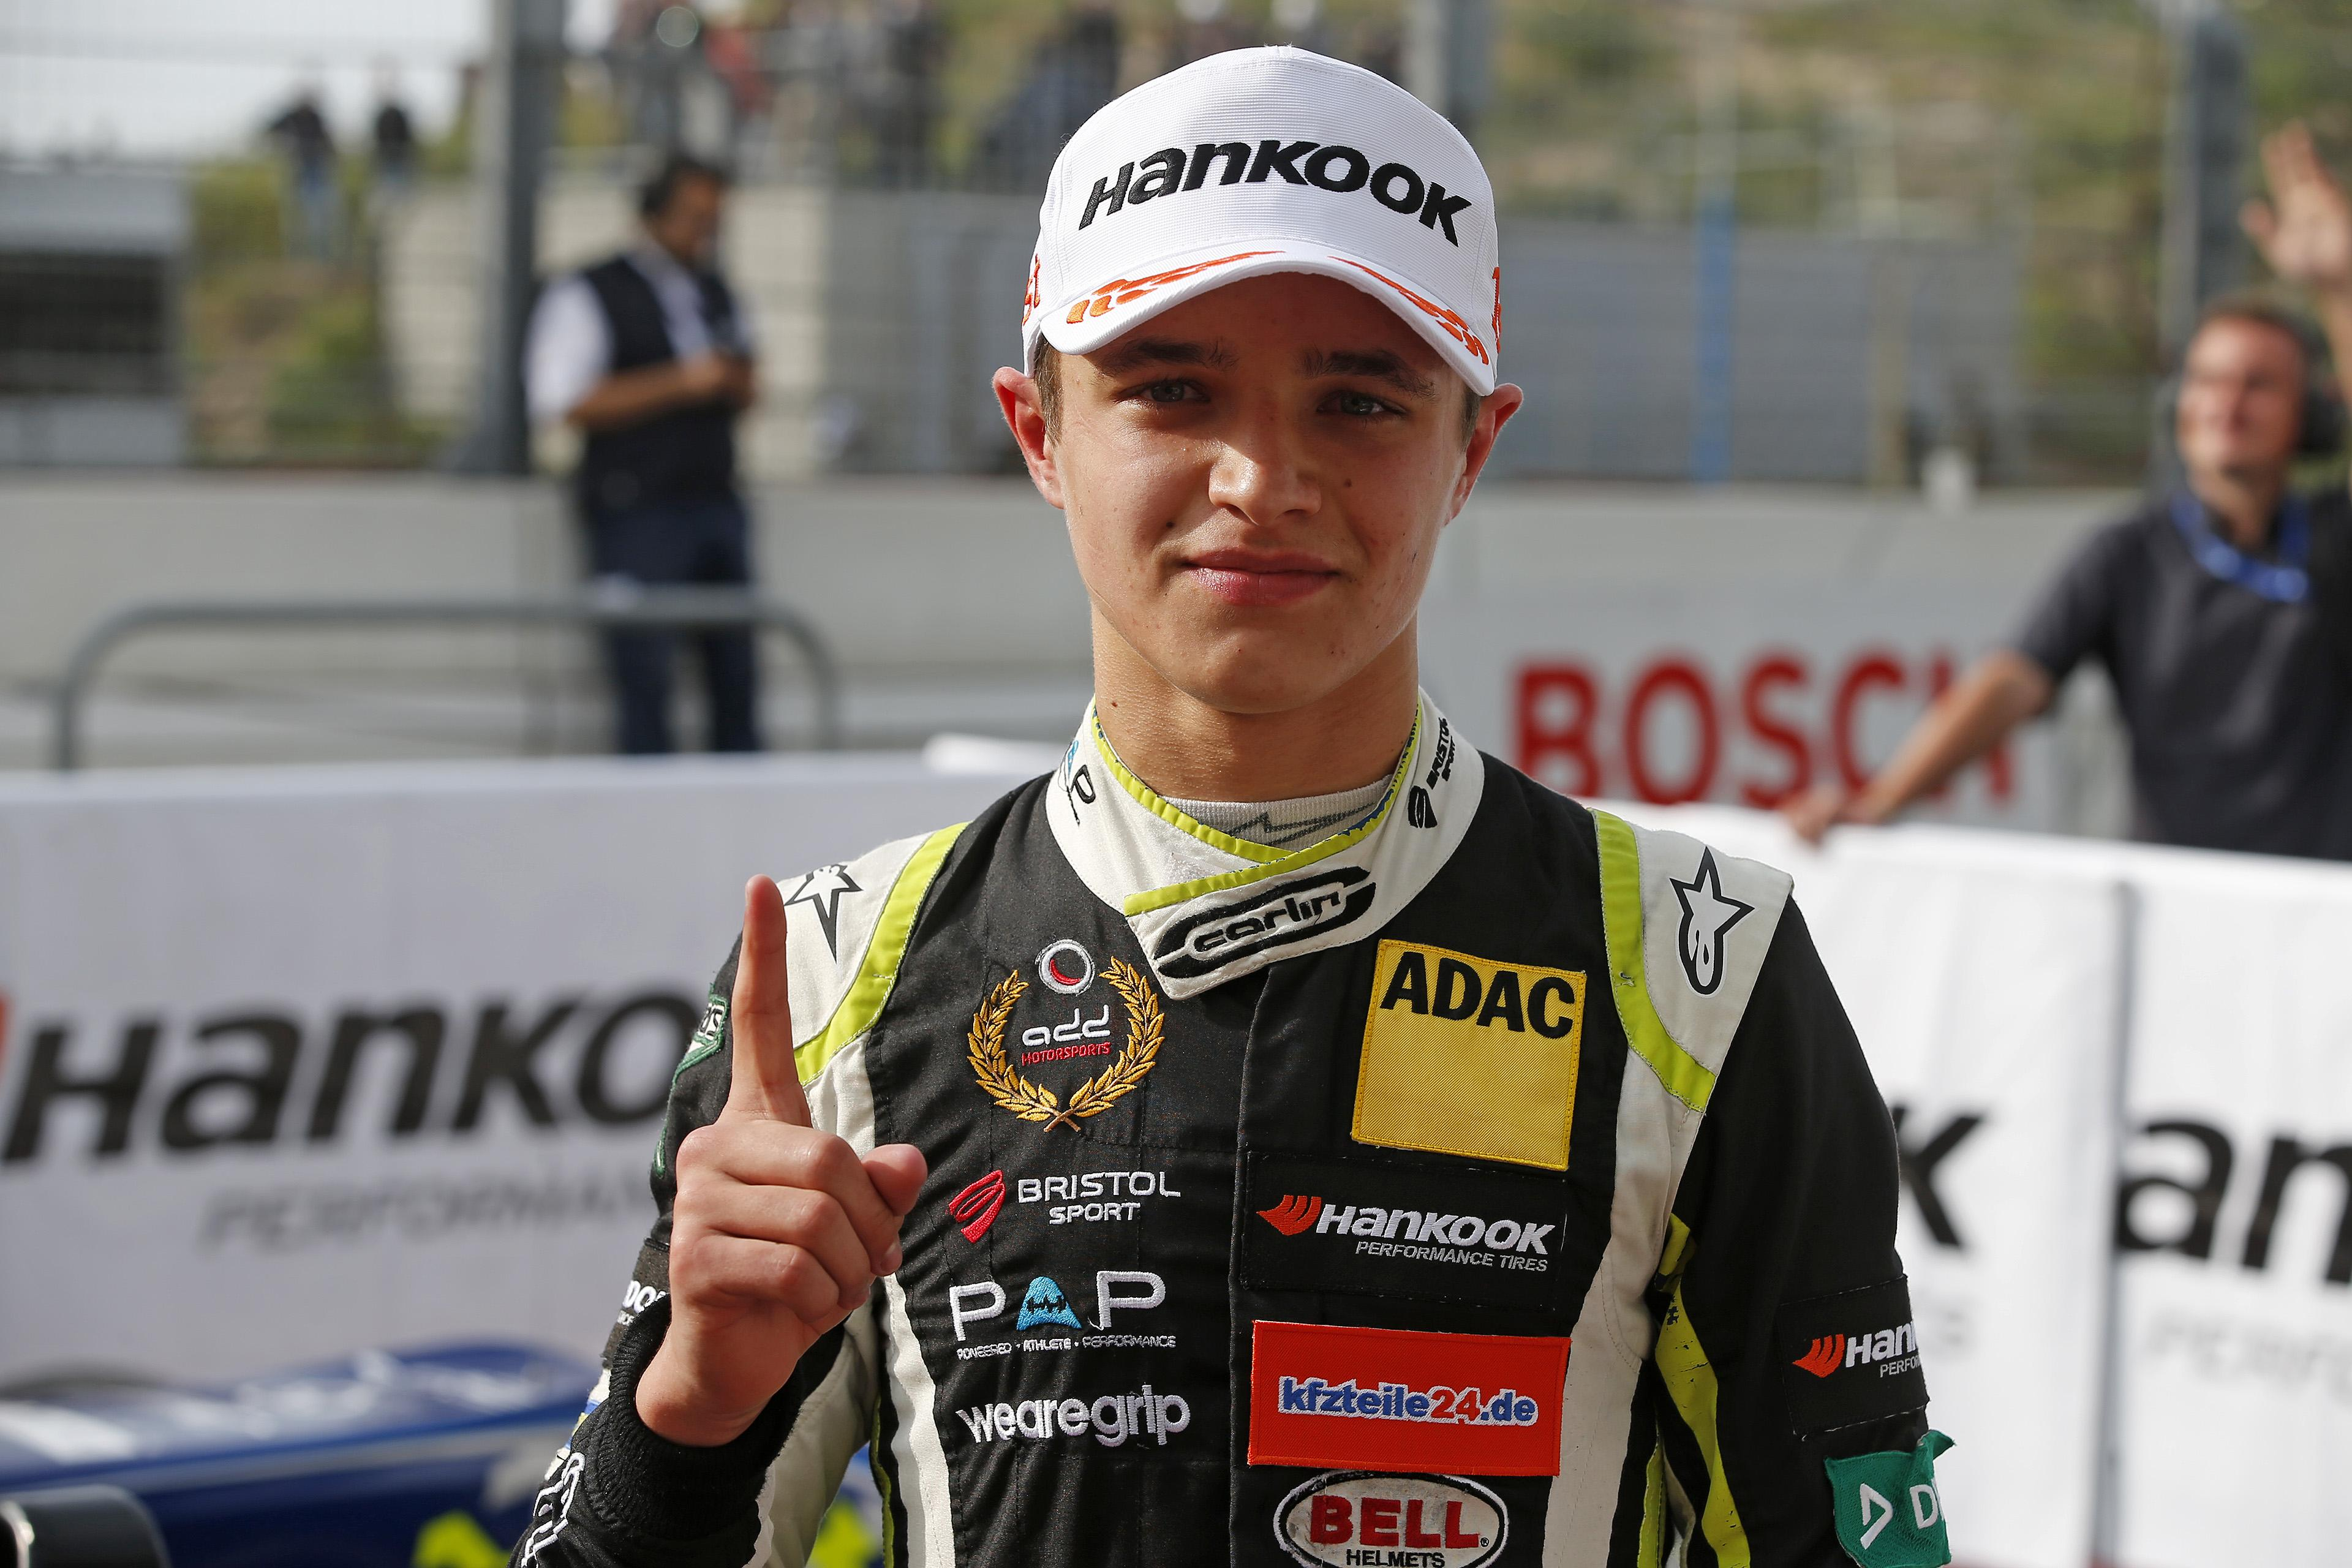 Norris will be hoping to impress at the Belgian GP